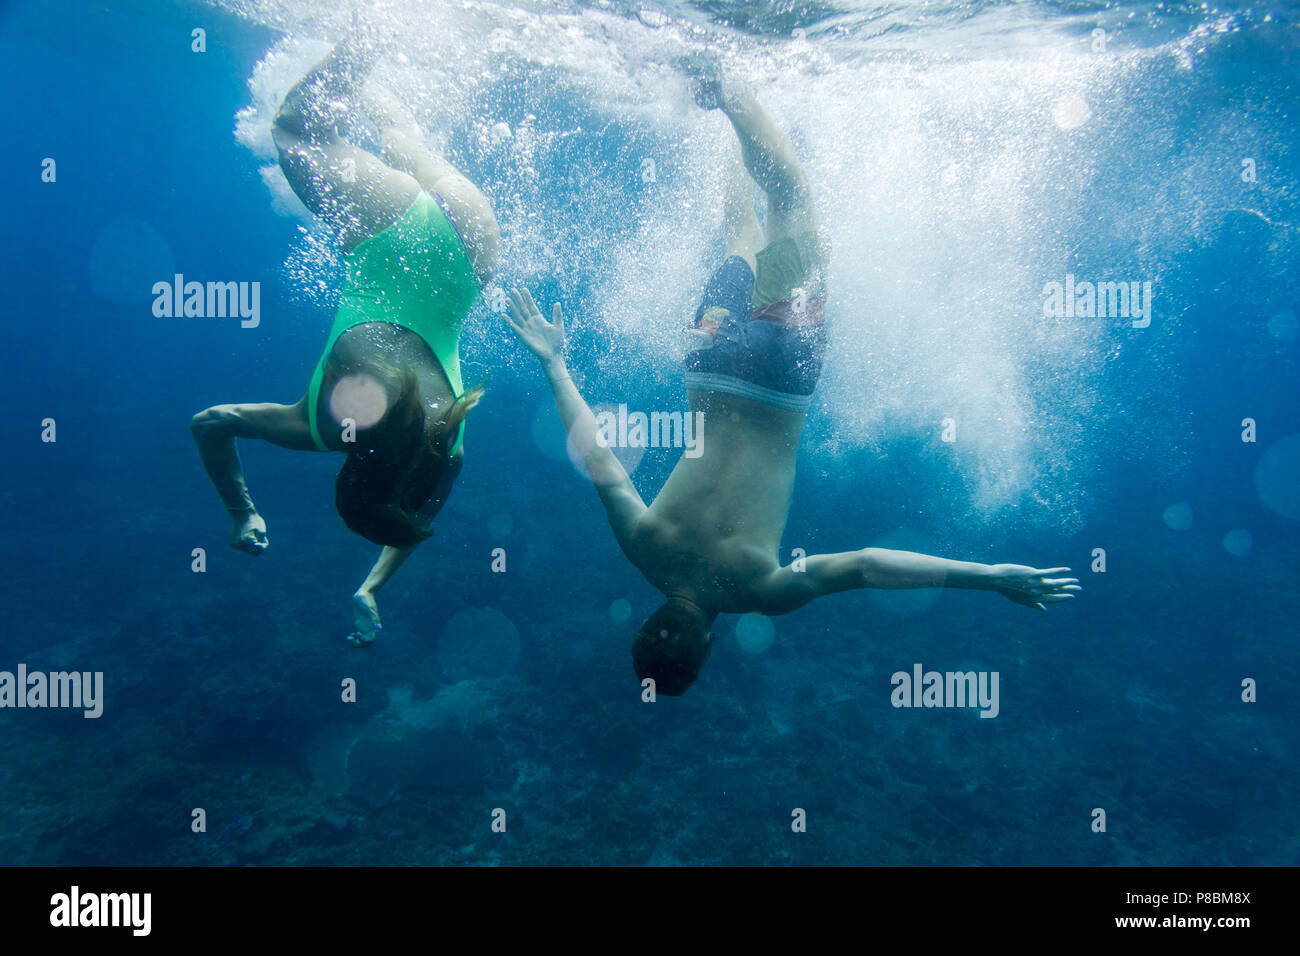 underwater photo of couple diving together in ocean Stock Photo